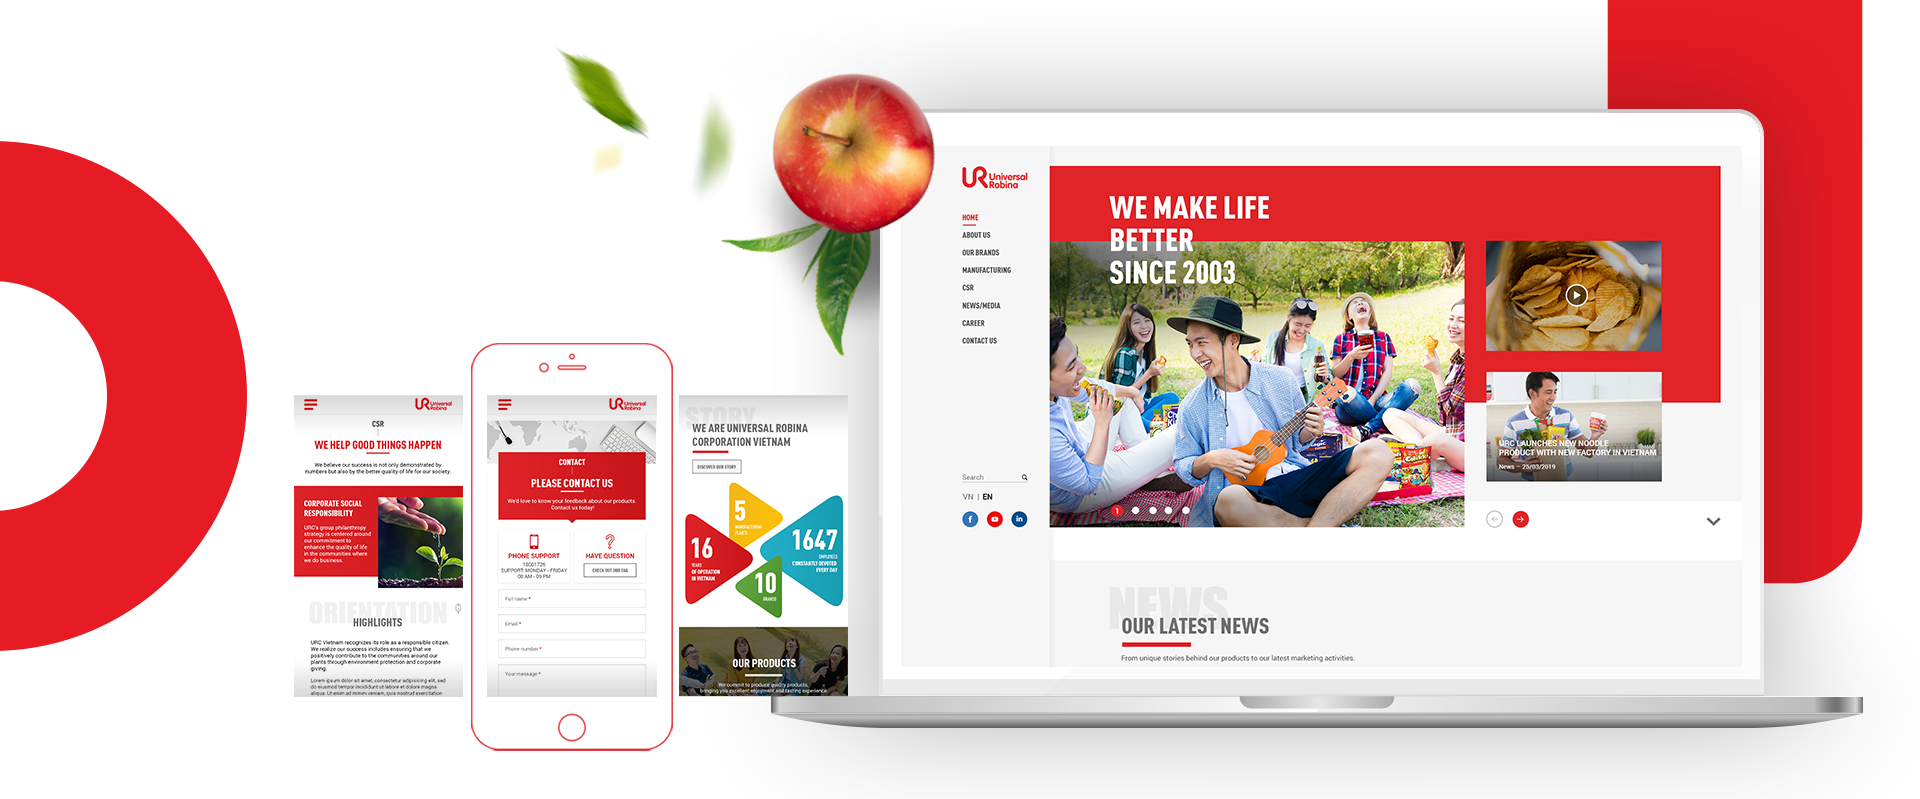 URC - Website development